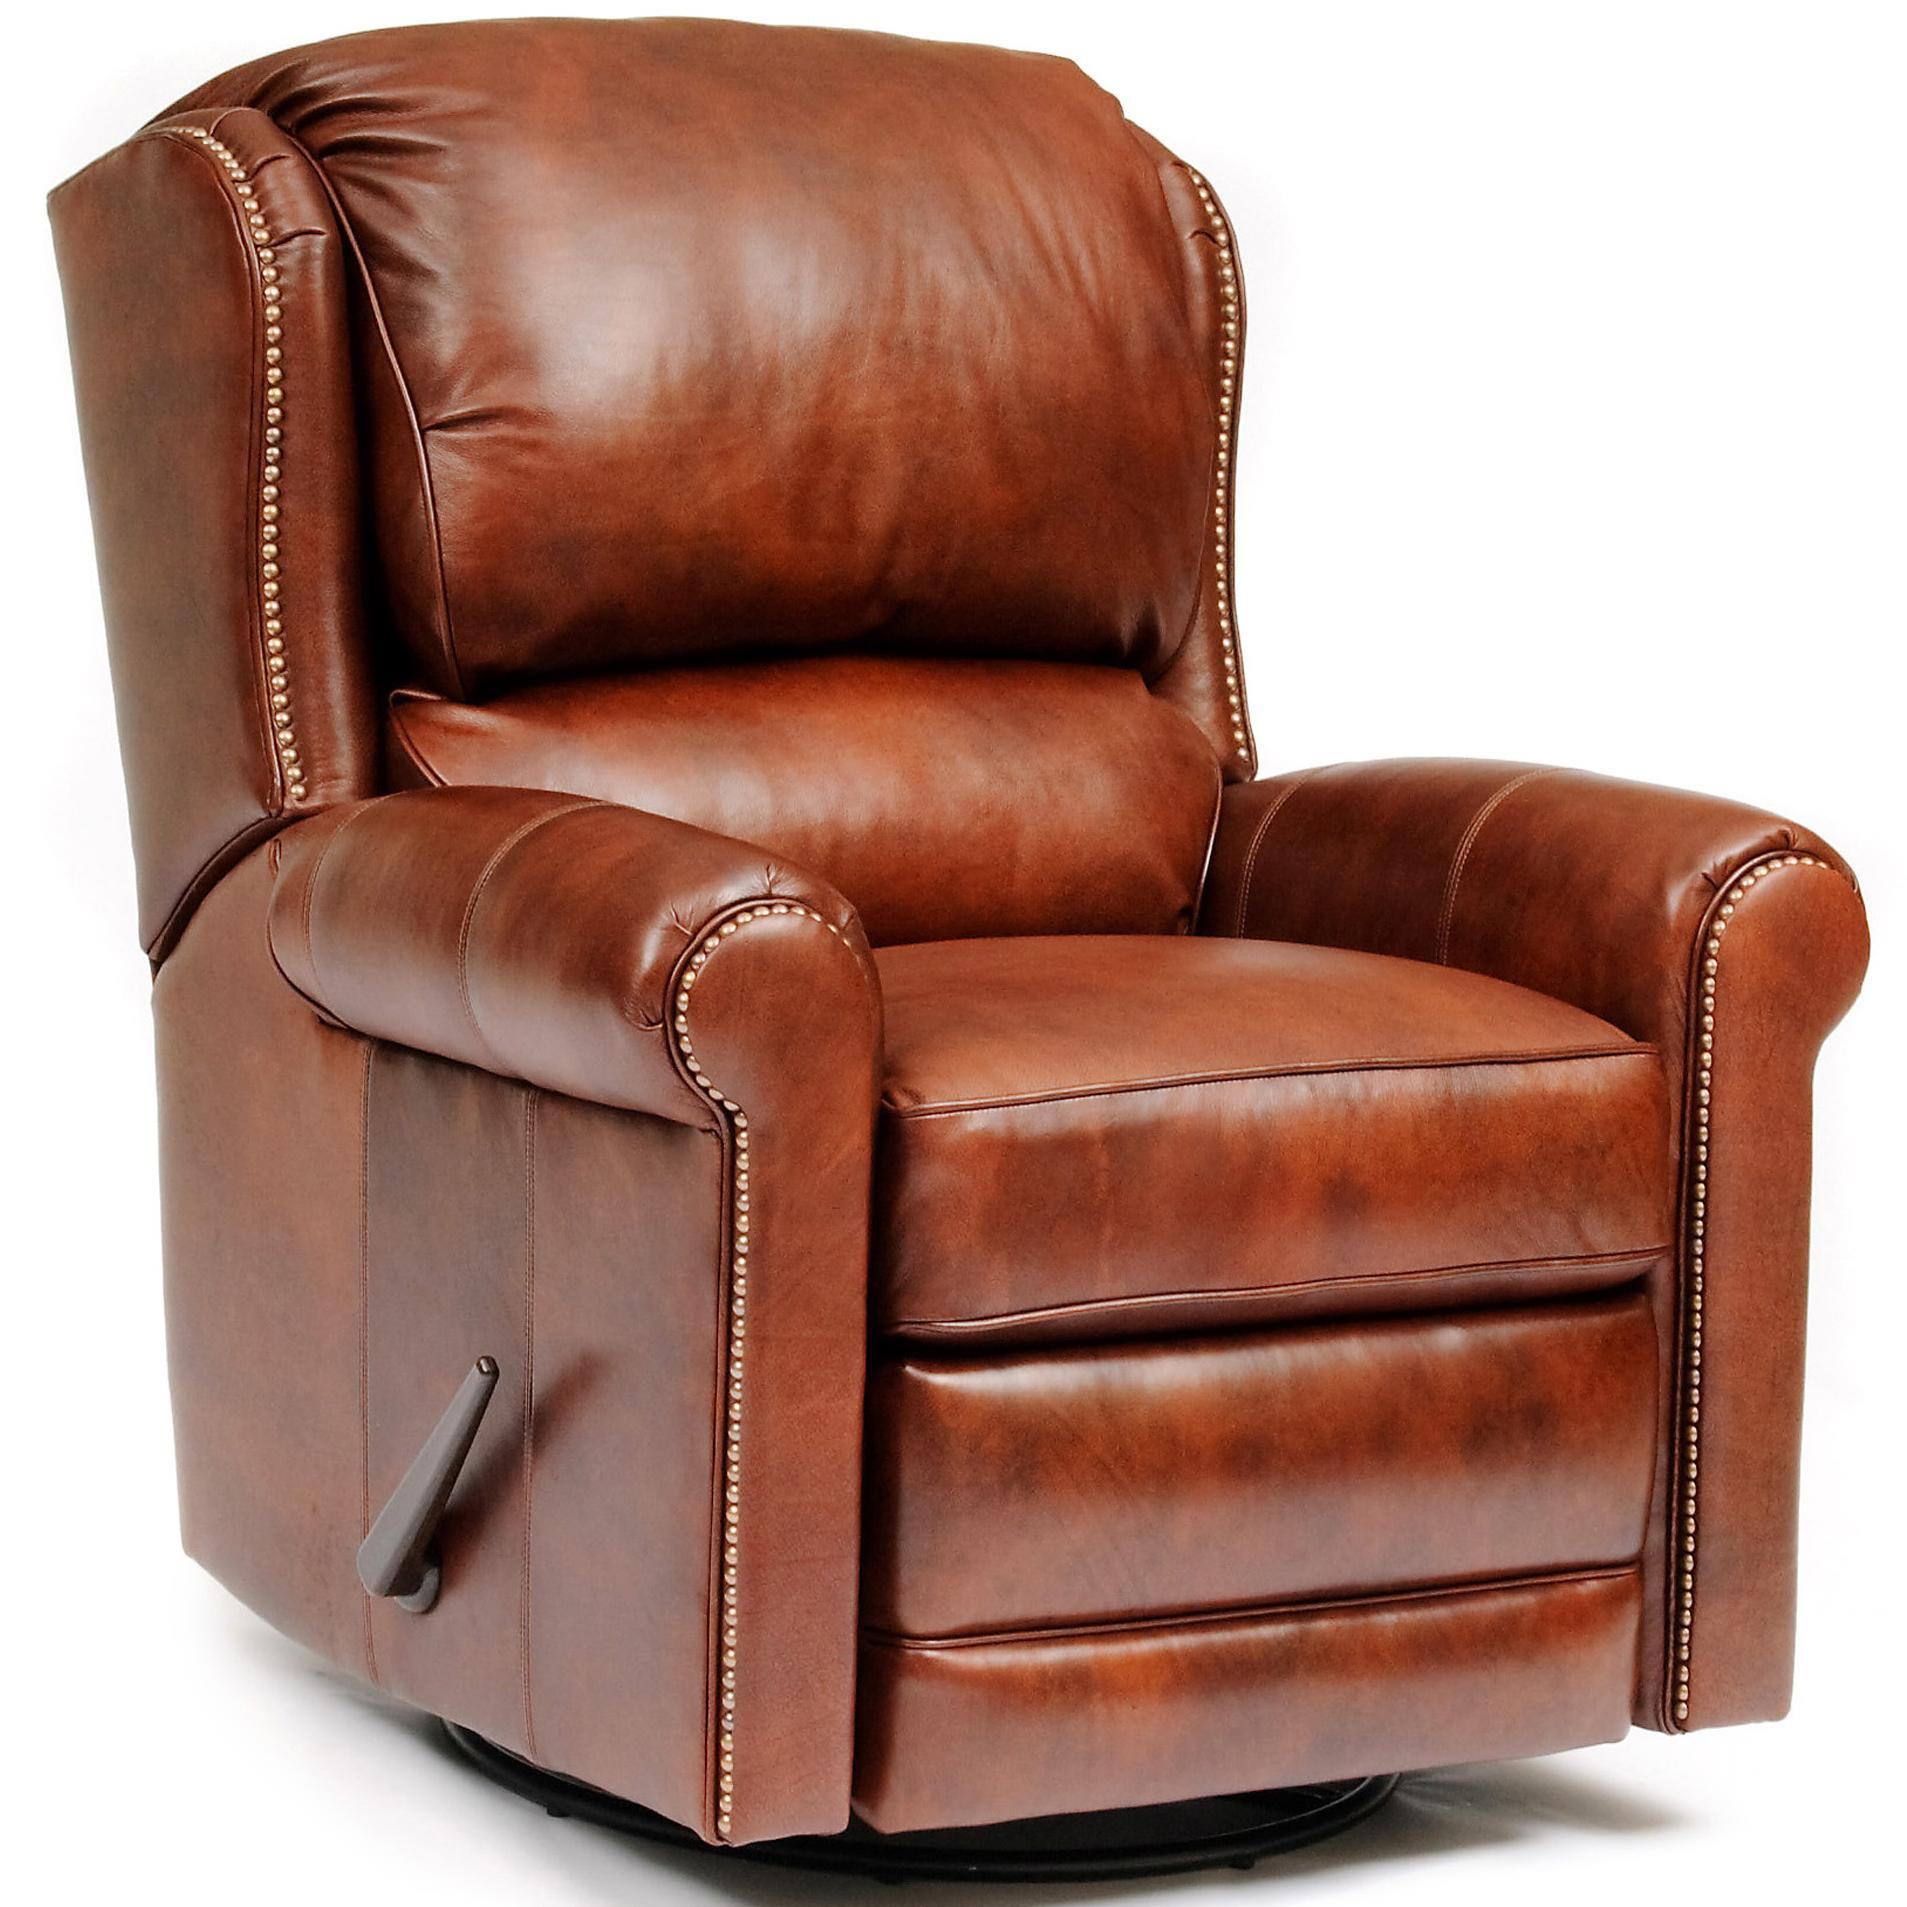 720L Casual Recliner  by Smith Brothers at Sprintz Furniture